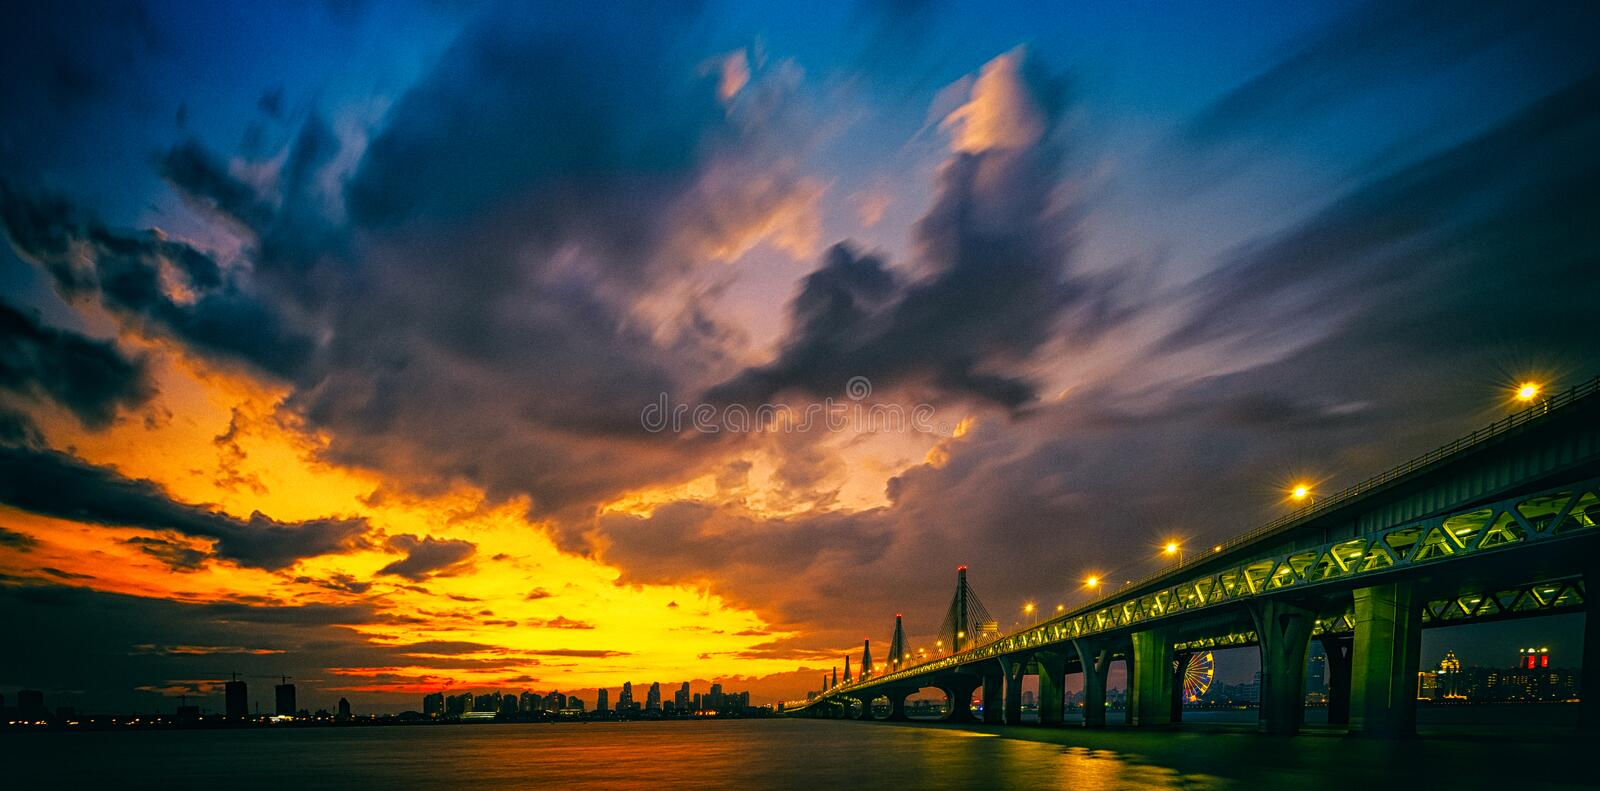 Twilight Night of Yangtze River Bridge. Chaoyang Bridge is about 3.6 kilometers long and its deck is 33.5 to 40.5 meters wide. Chaoyang Bridge in Nanchang is the royalty free stock photo